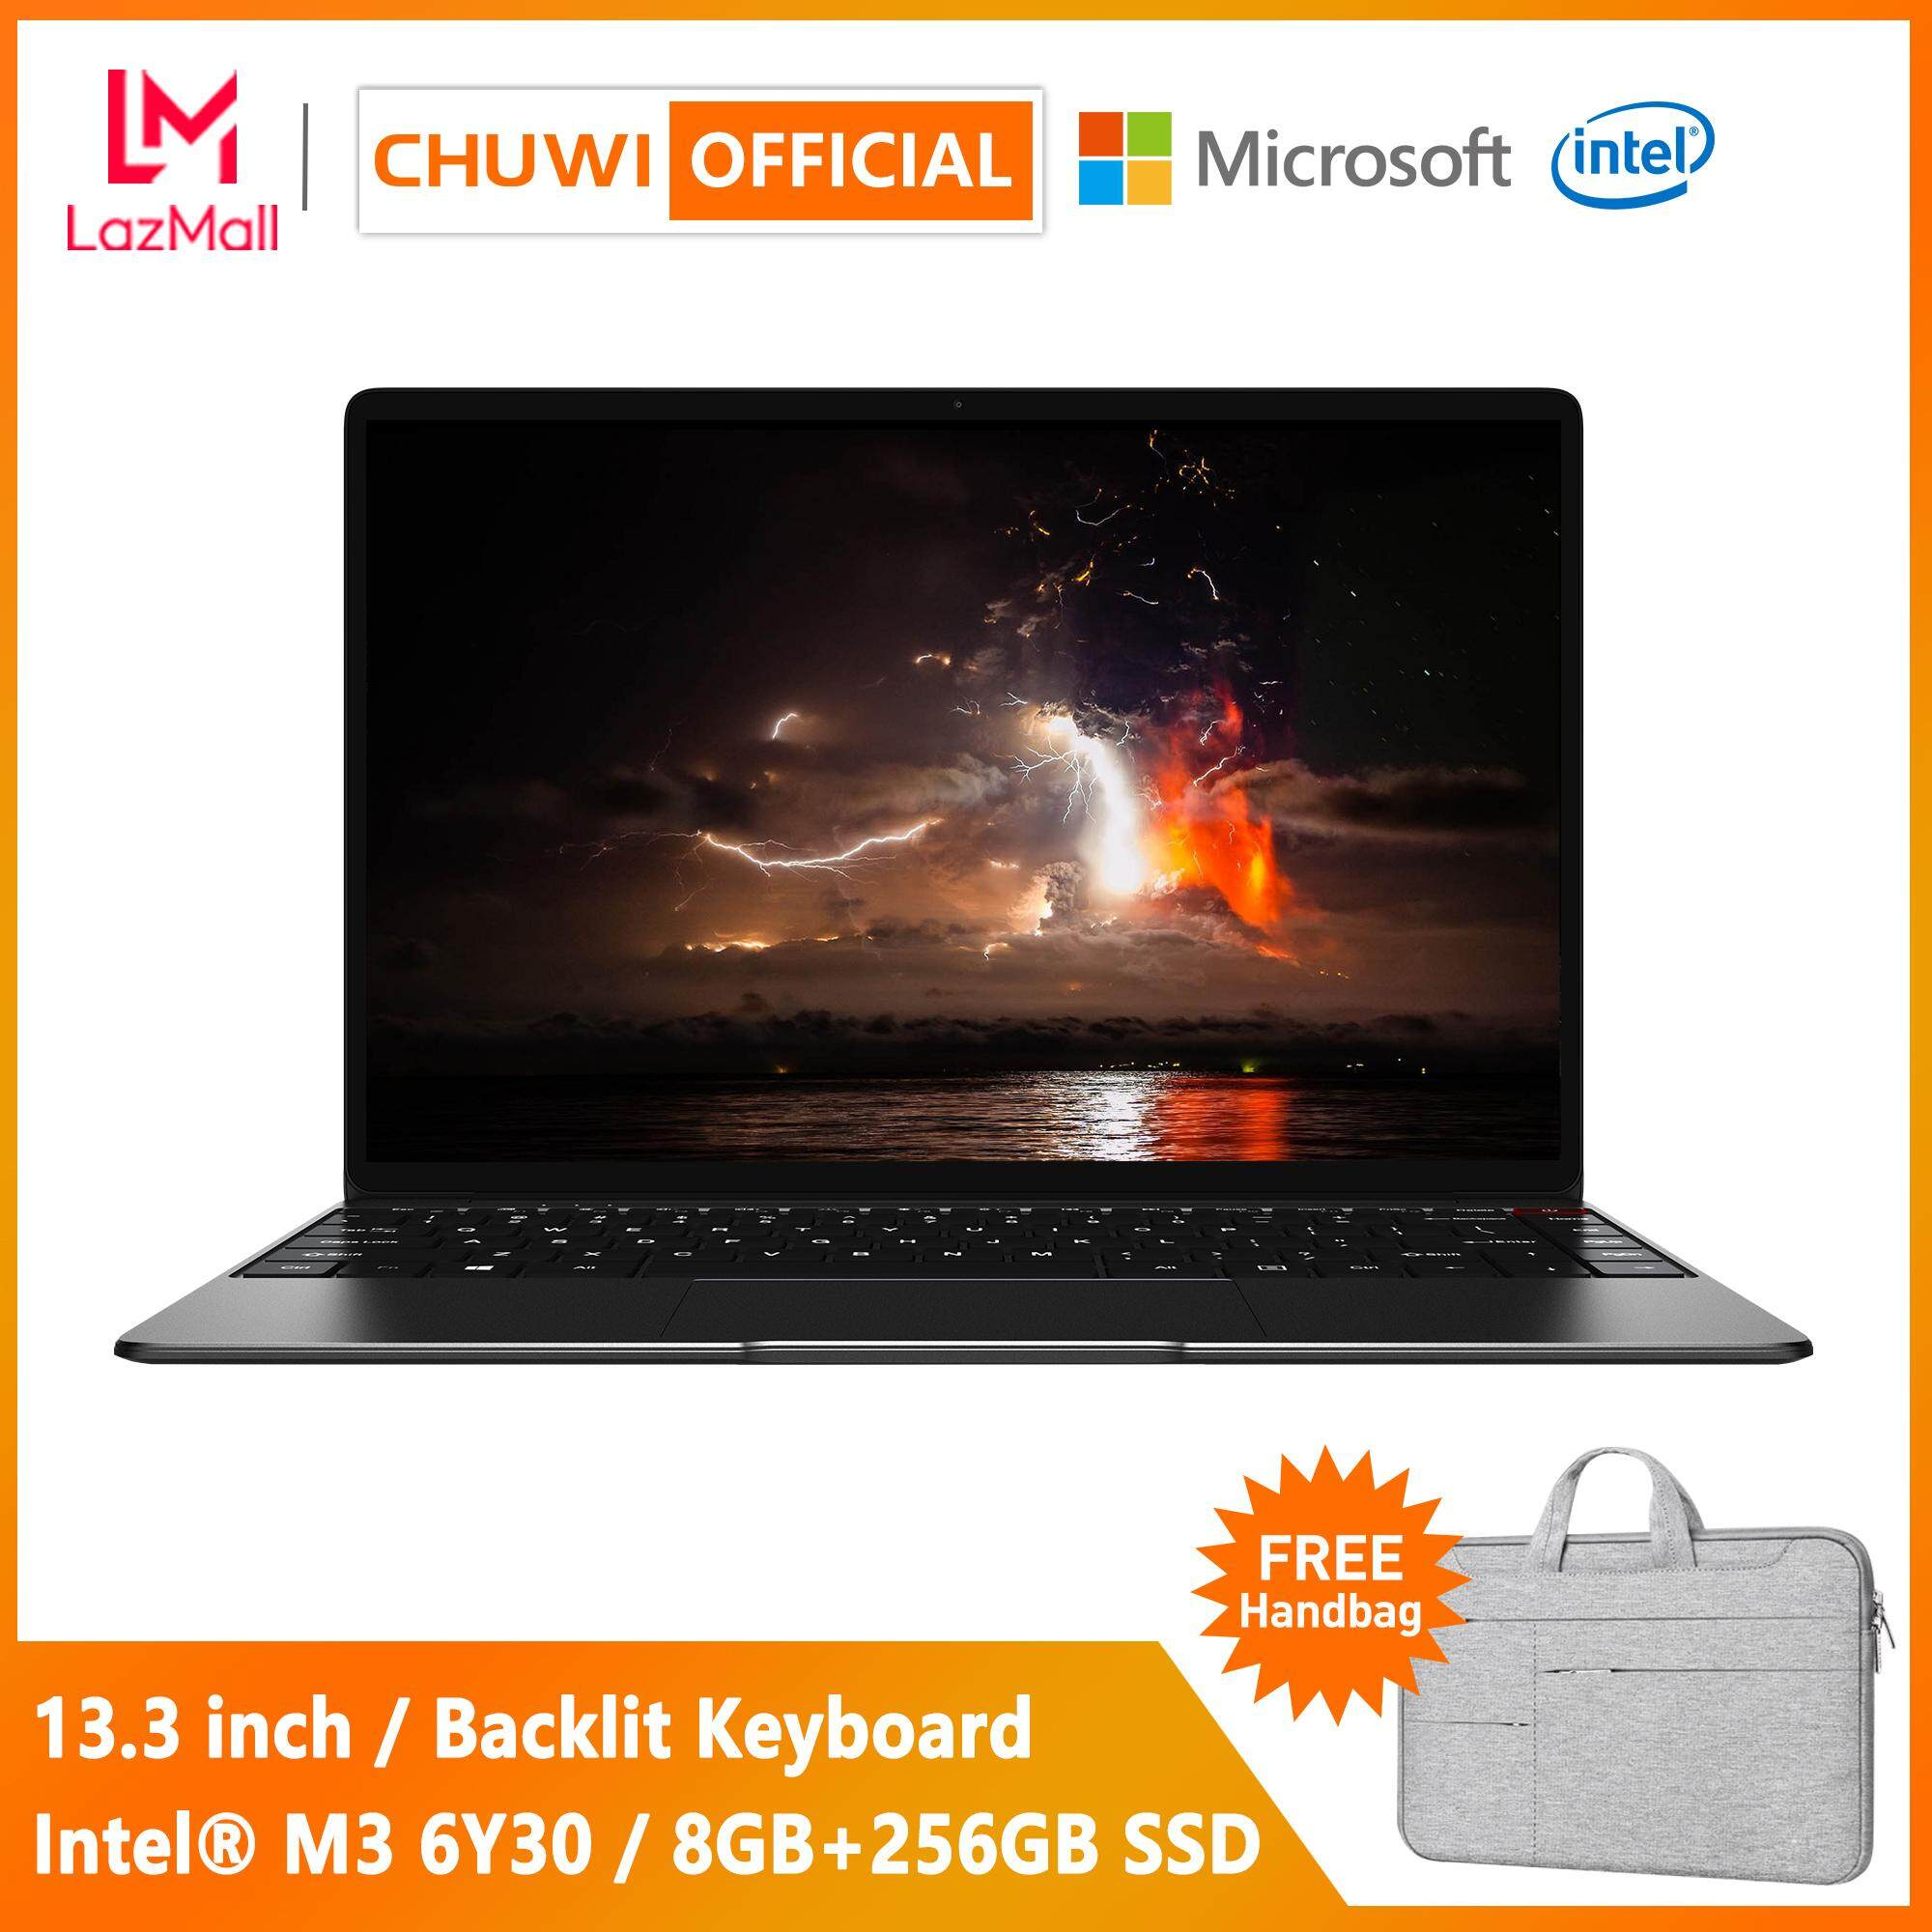 【CHUWI OFFICIAL】AeroBook Laptop / 13 3 Inch 1920*1080 IPS / 8GB RAM+256GB  SSD / Intel® M3 CPU / Borderless Backlit Keyboard / Genuine Windows 10 /